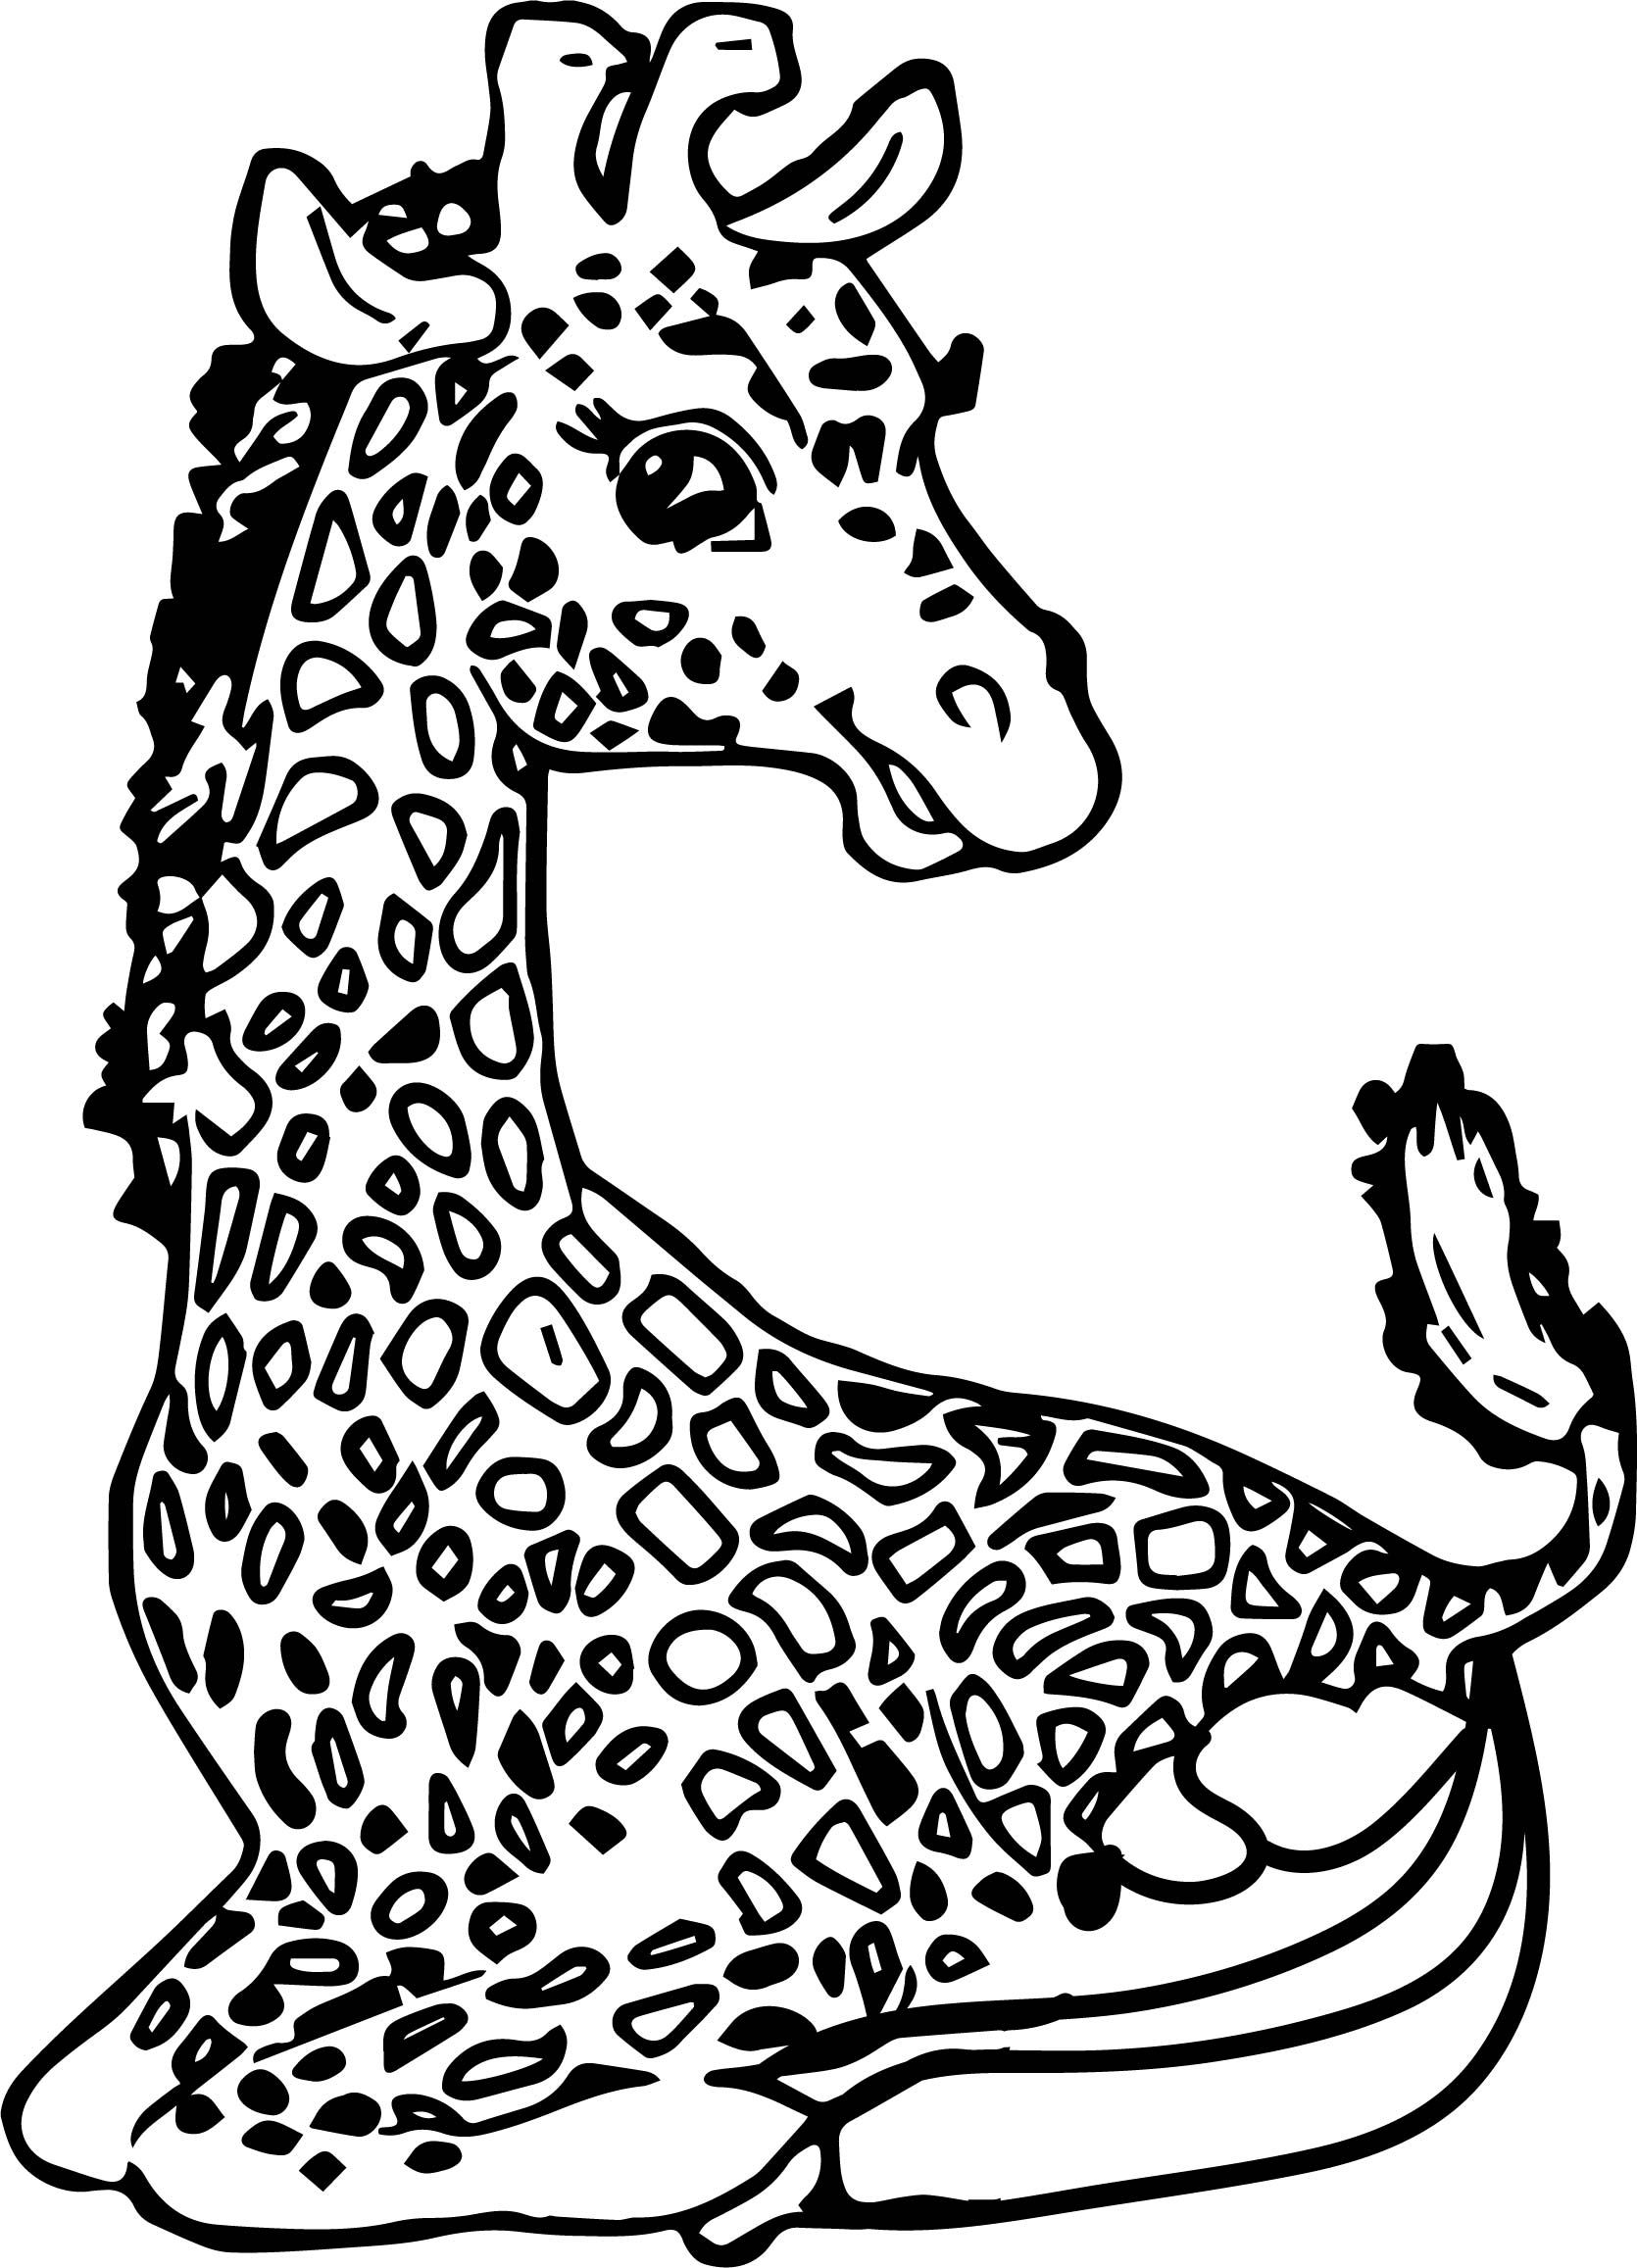 Awesome Giraffe Suprise Coloring Page